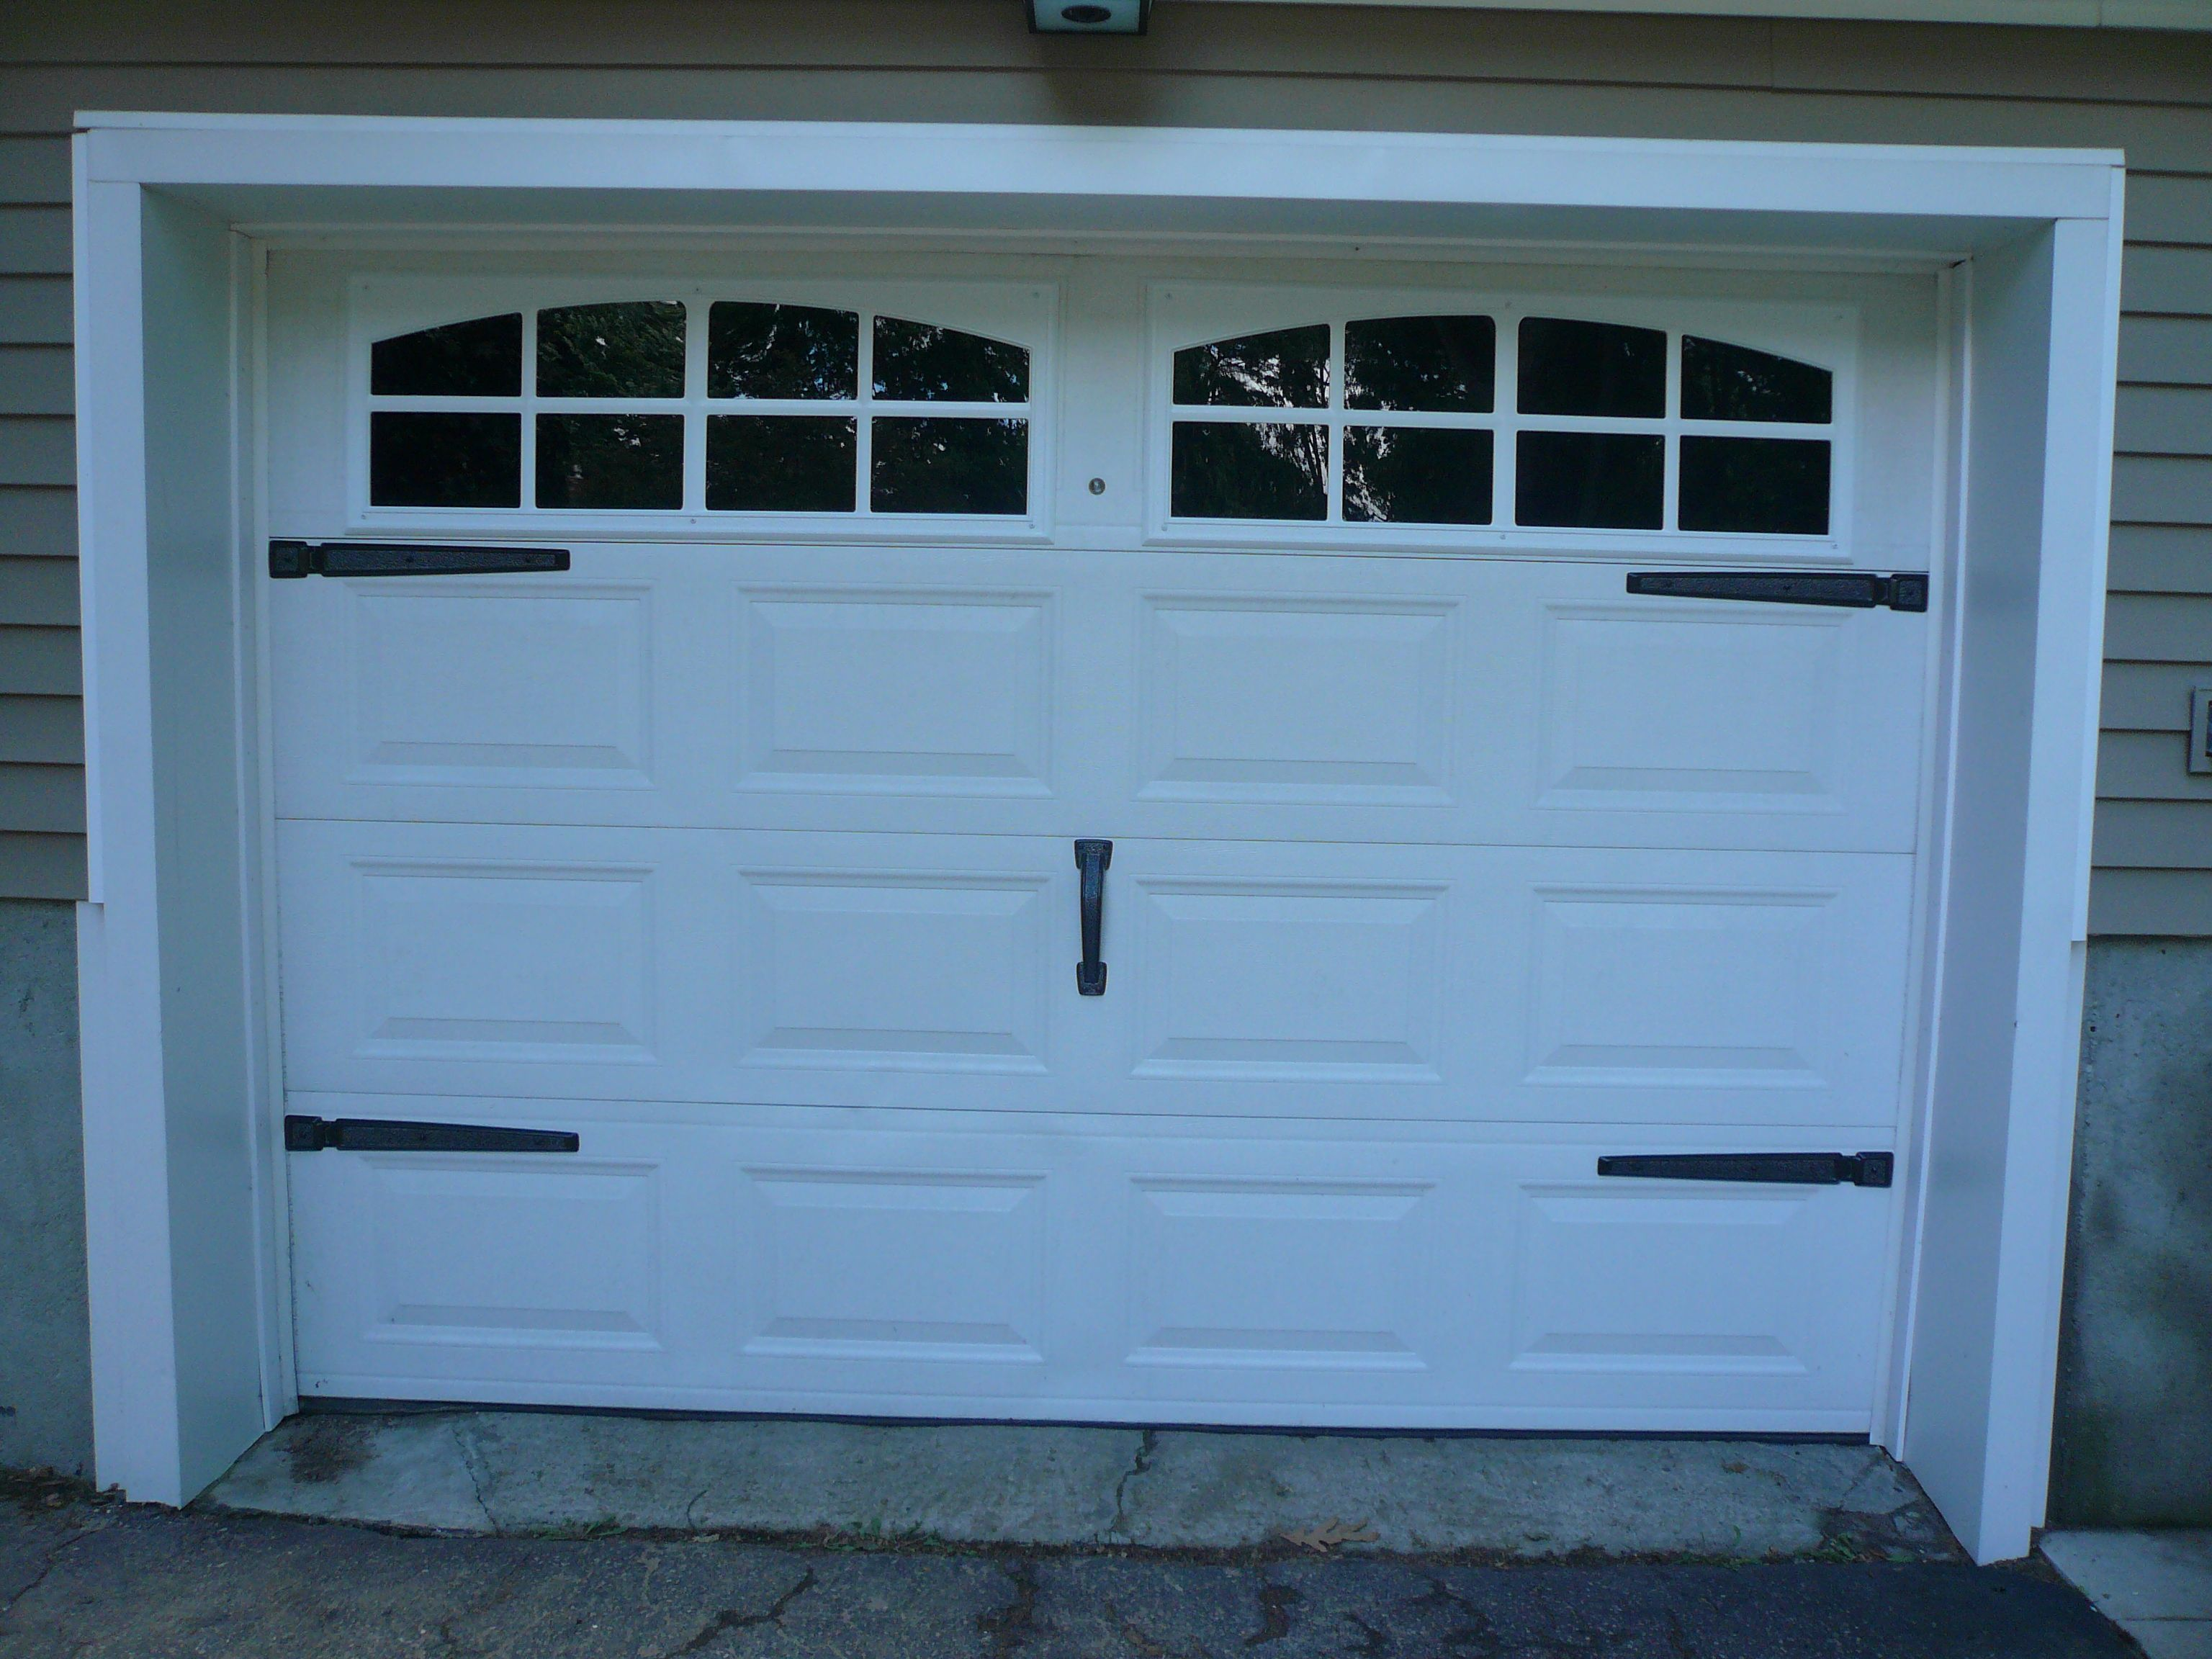 View ex&les of our Coach House garage door accents in customer submitted photos. & View examples of our Coach House garage door accents in customer ...